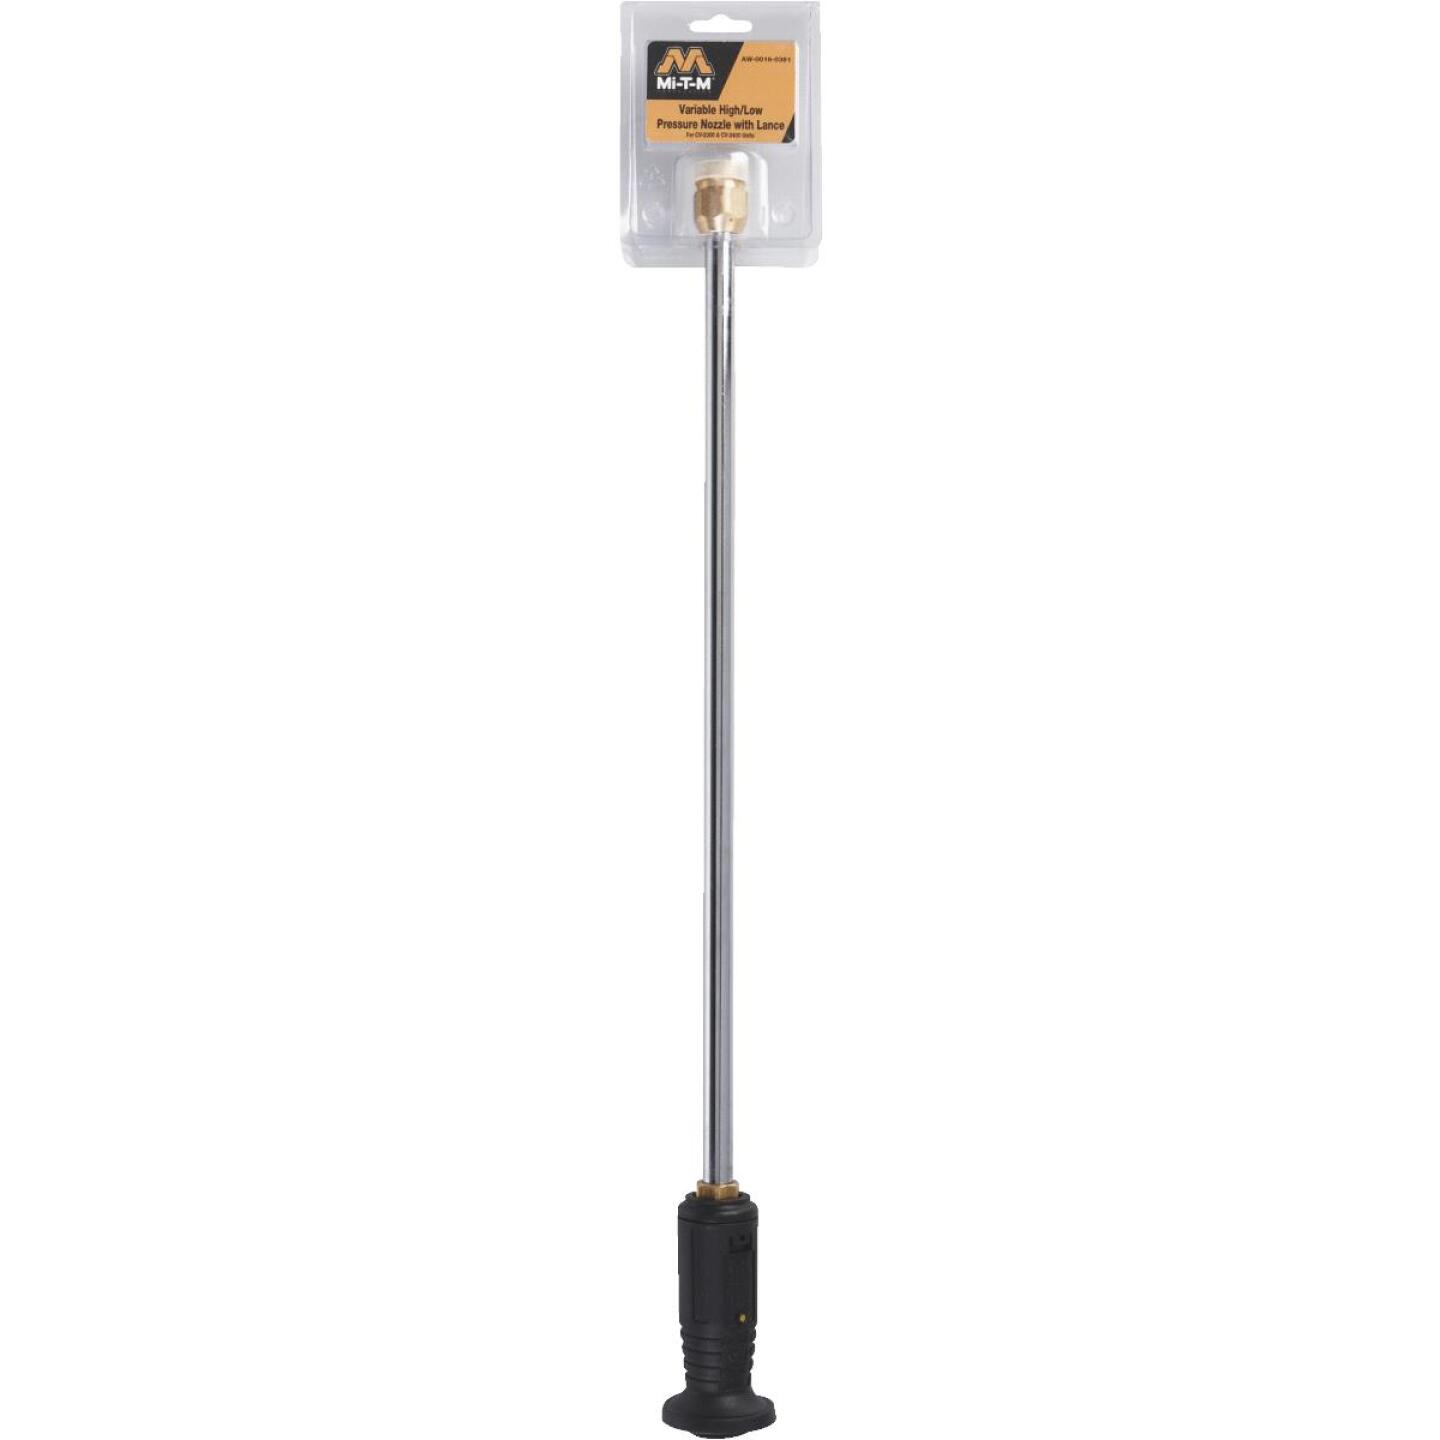 Mi-T-M 23 In. Pressure Washer Wand Image 2